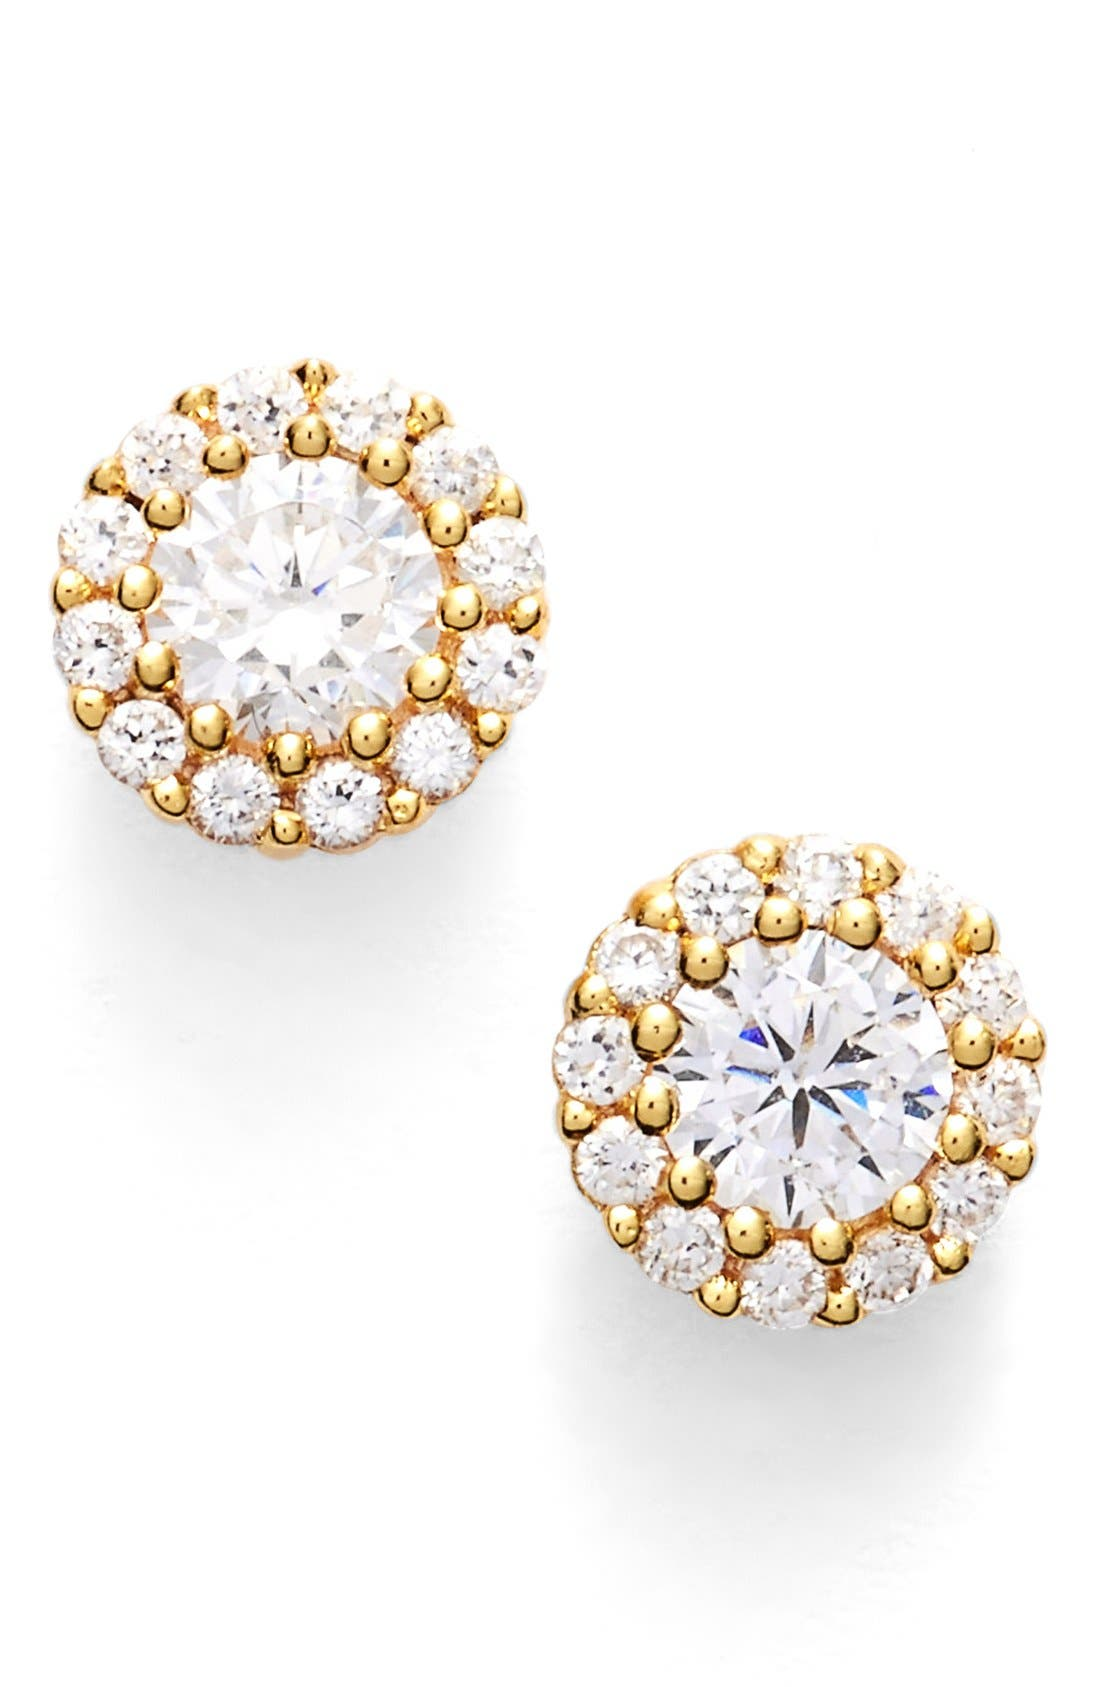 Precious Metal Plated 0.50ct tw Cubic Zirconia Stud Earrings,                         Main,                         color, Gold